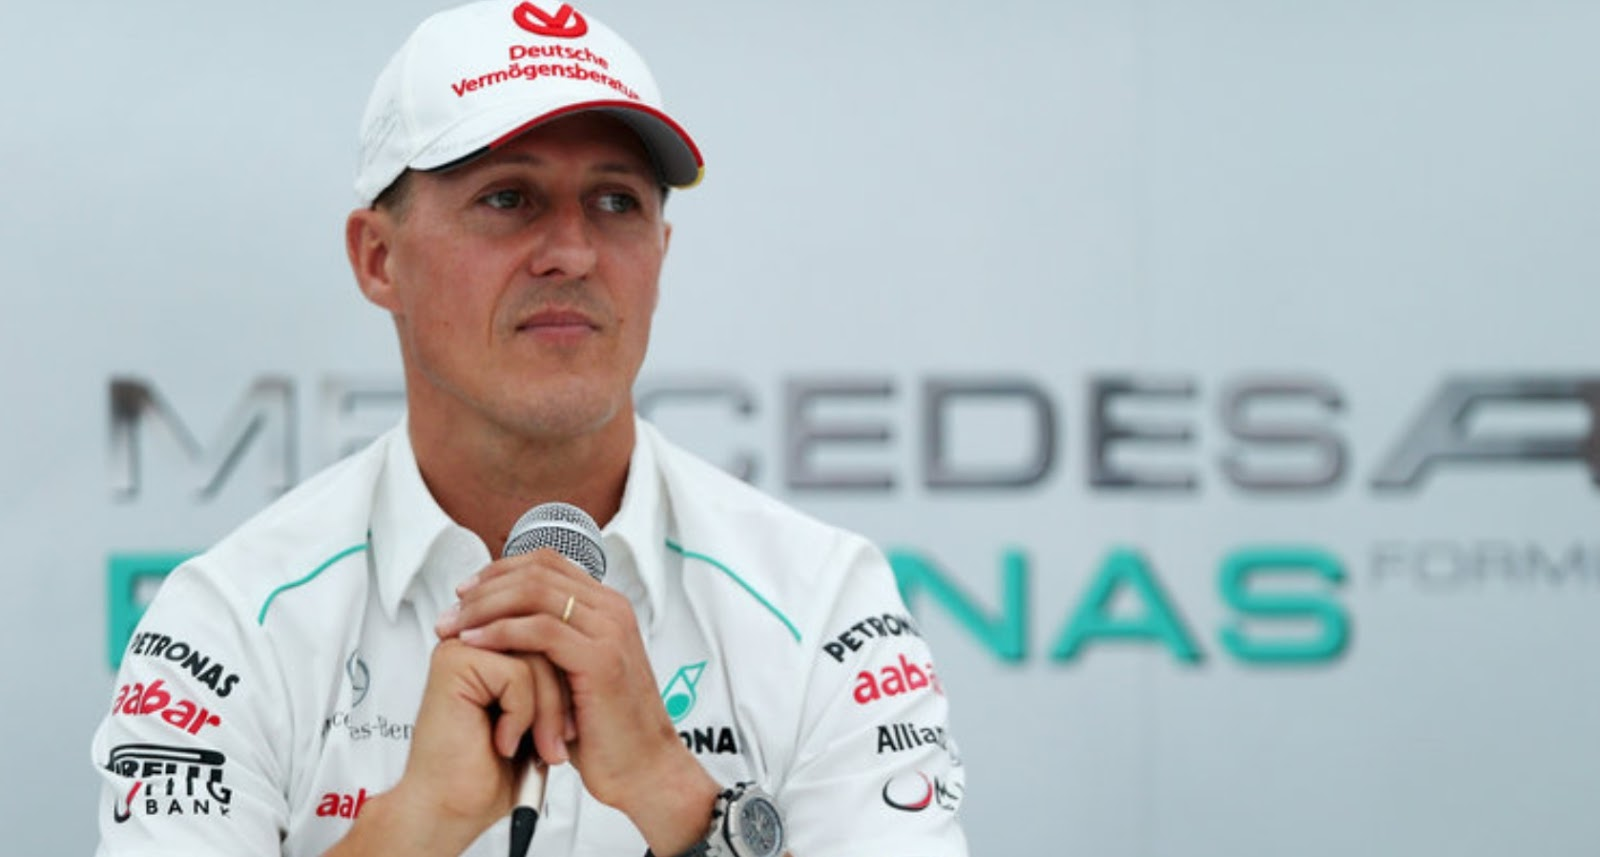 Michael Schumacher singed multi-millionaire contract Ferrari F1